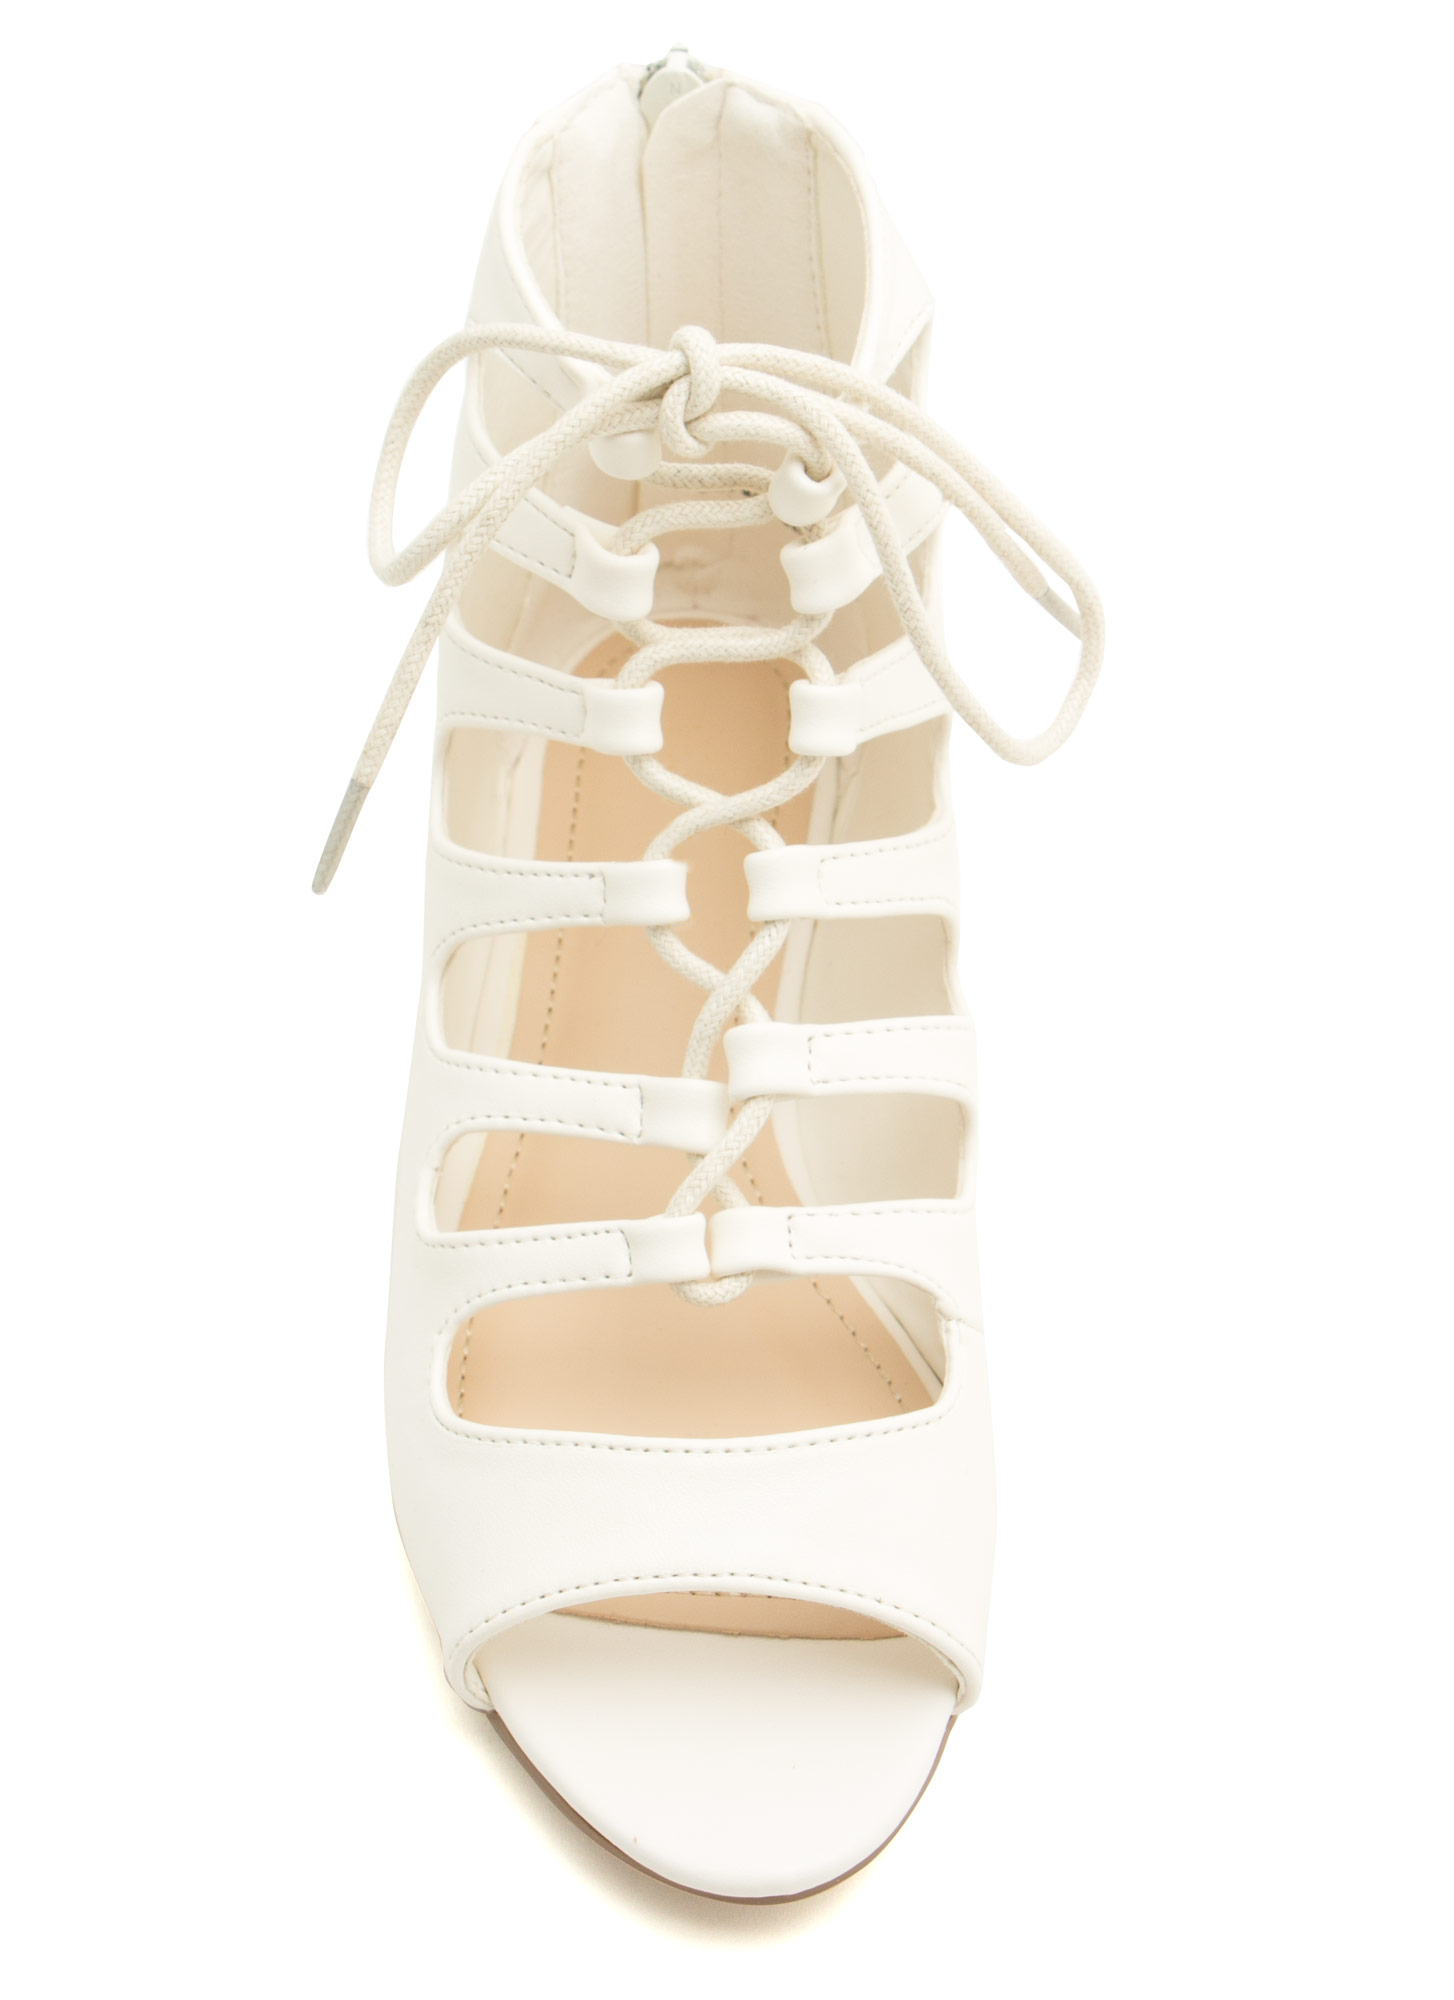 Ankle Biters Laced Cut-Out Sandals WHITE